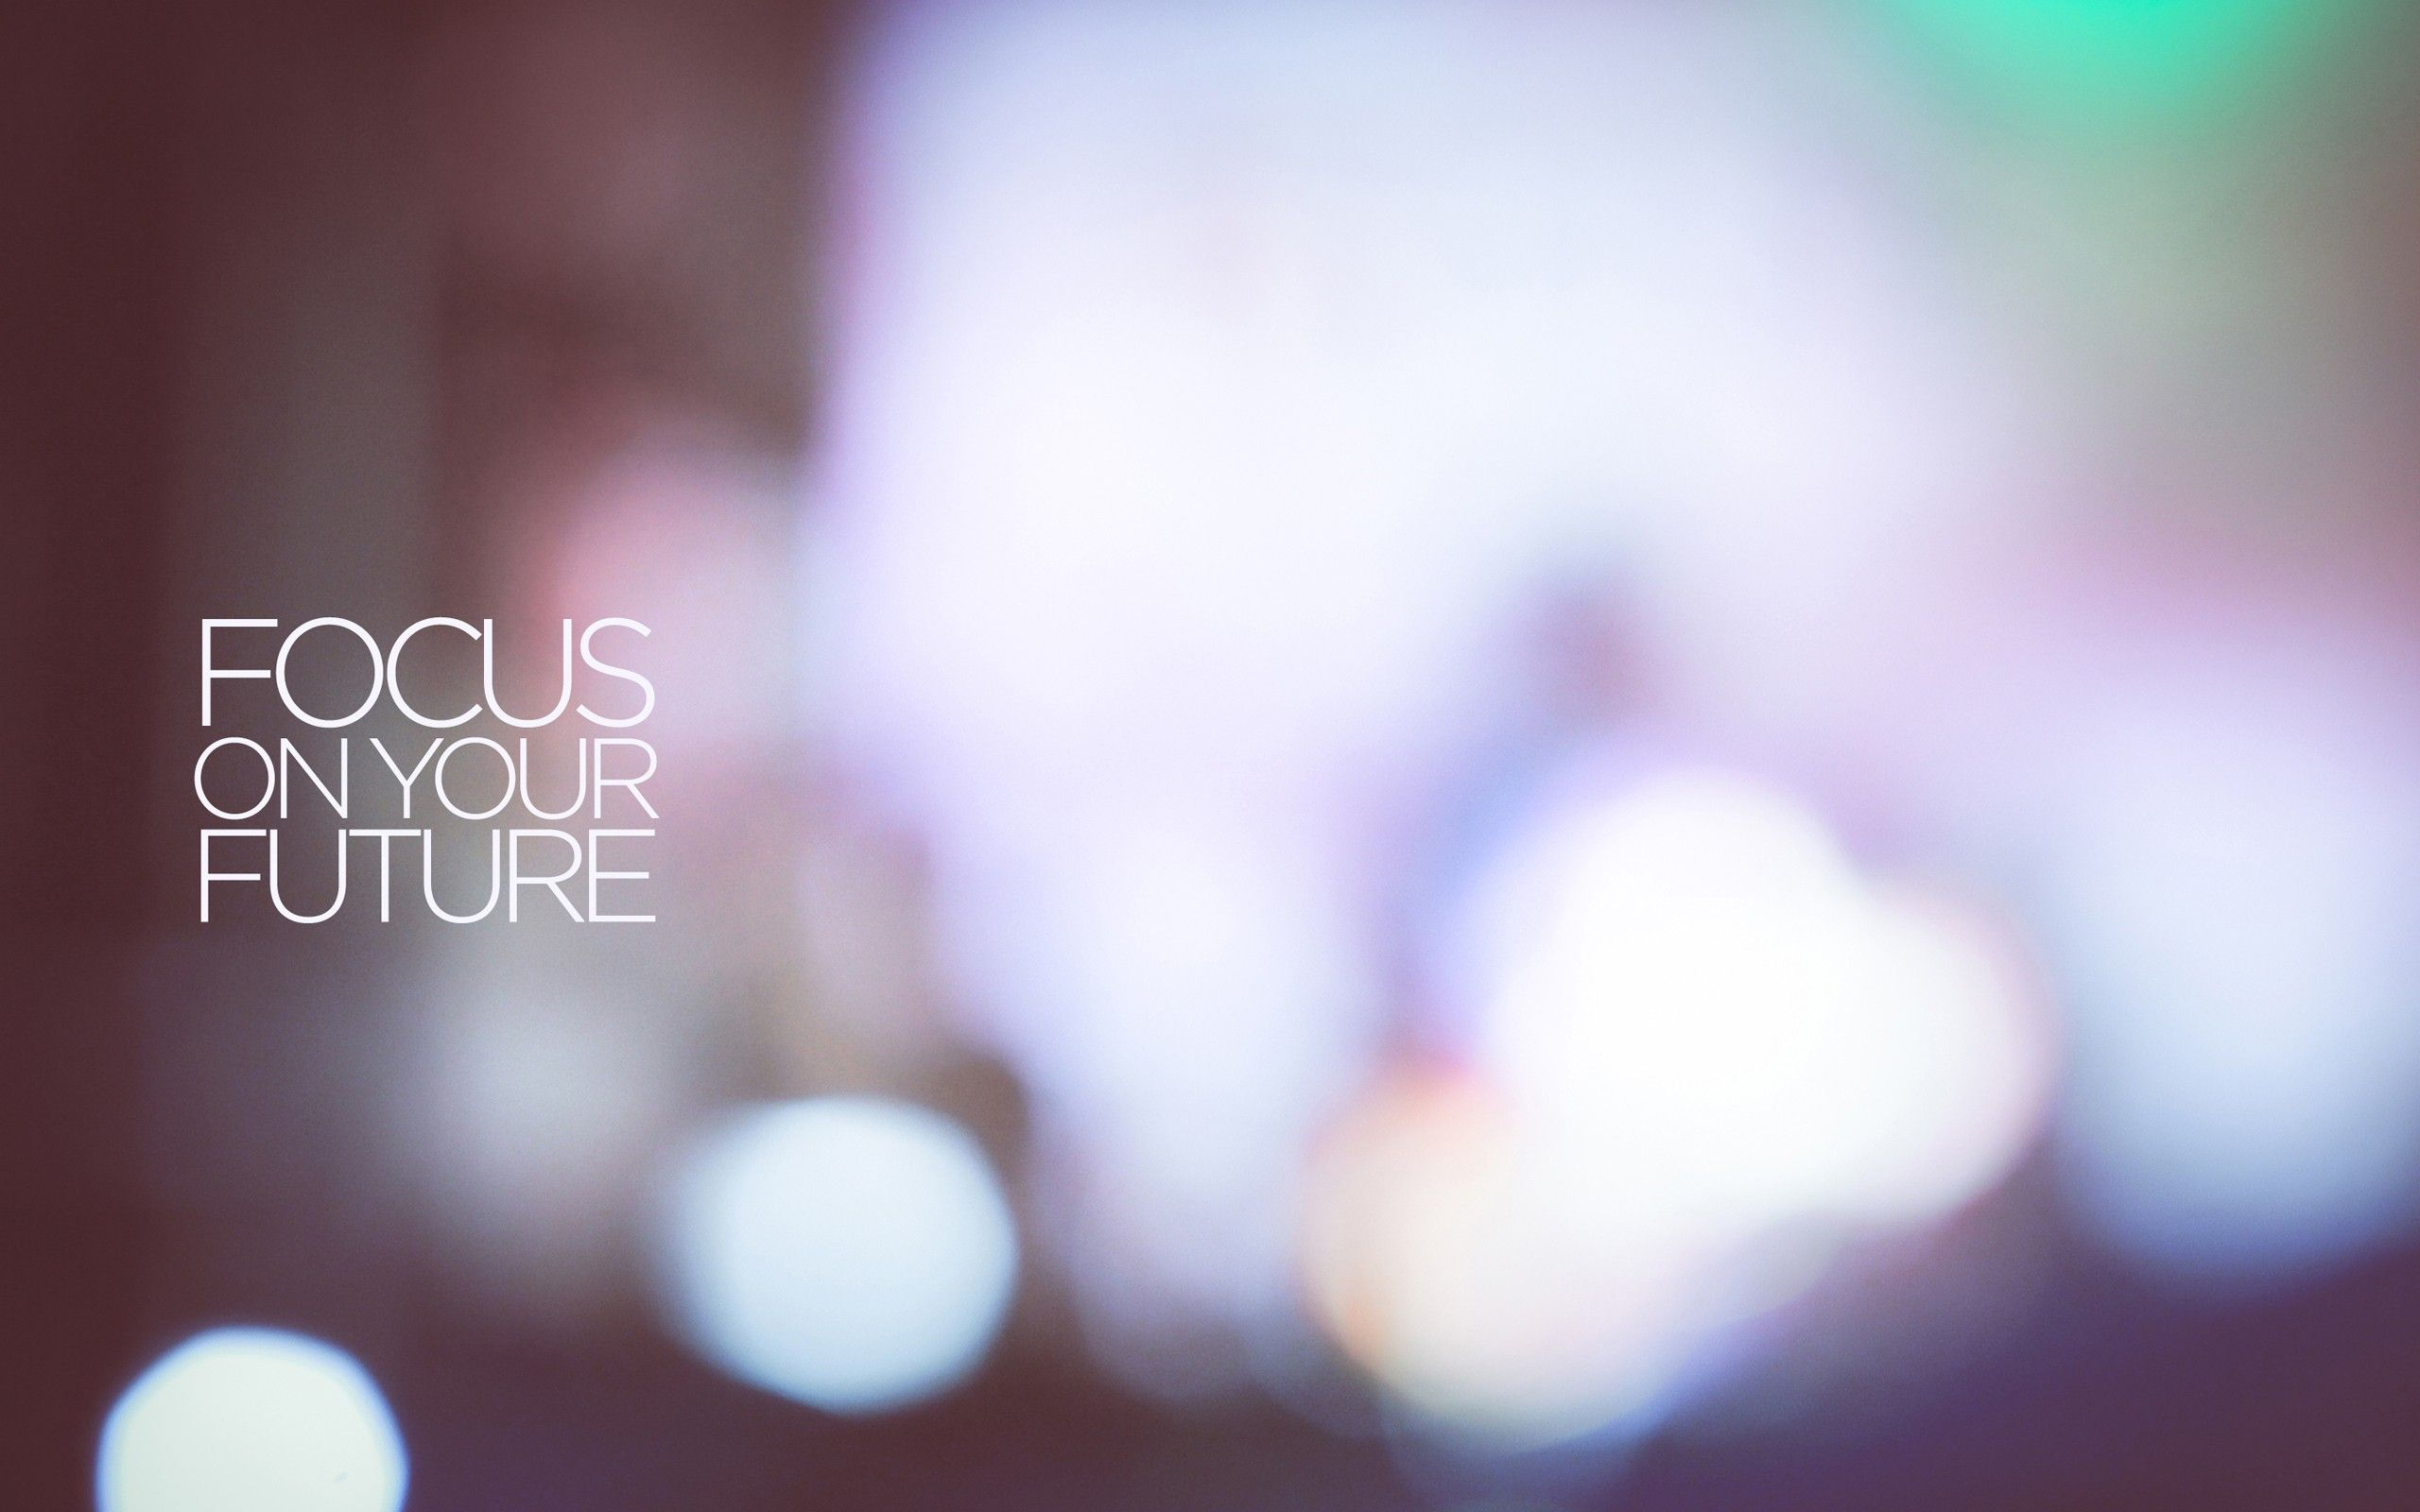 Focus On Your Future Bokeh Life Future Positive Truth Motivation Focus